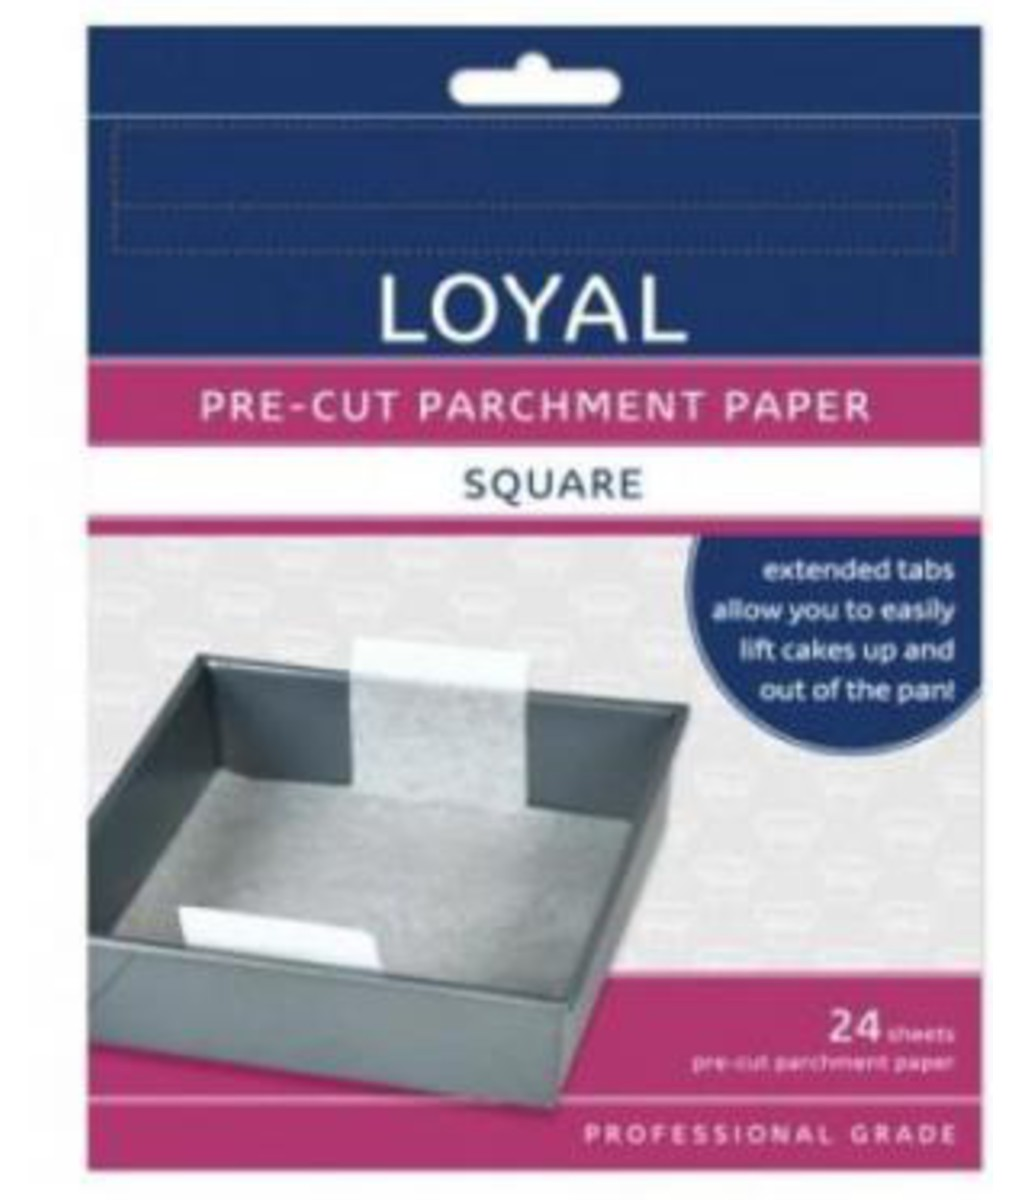 Parchment Paper - 15cm Pre-Cut Square with tabs by Loyal